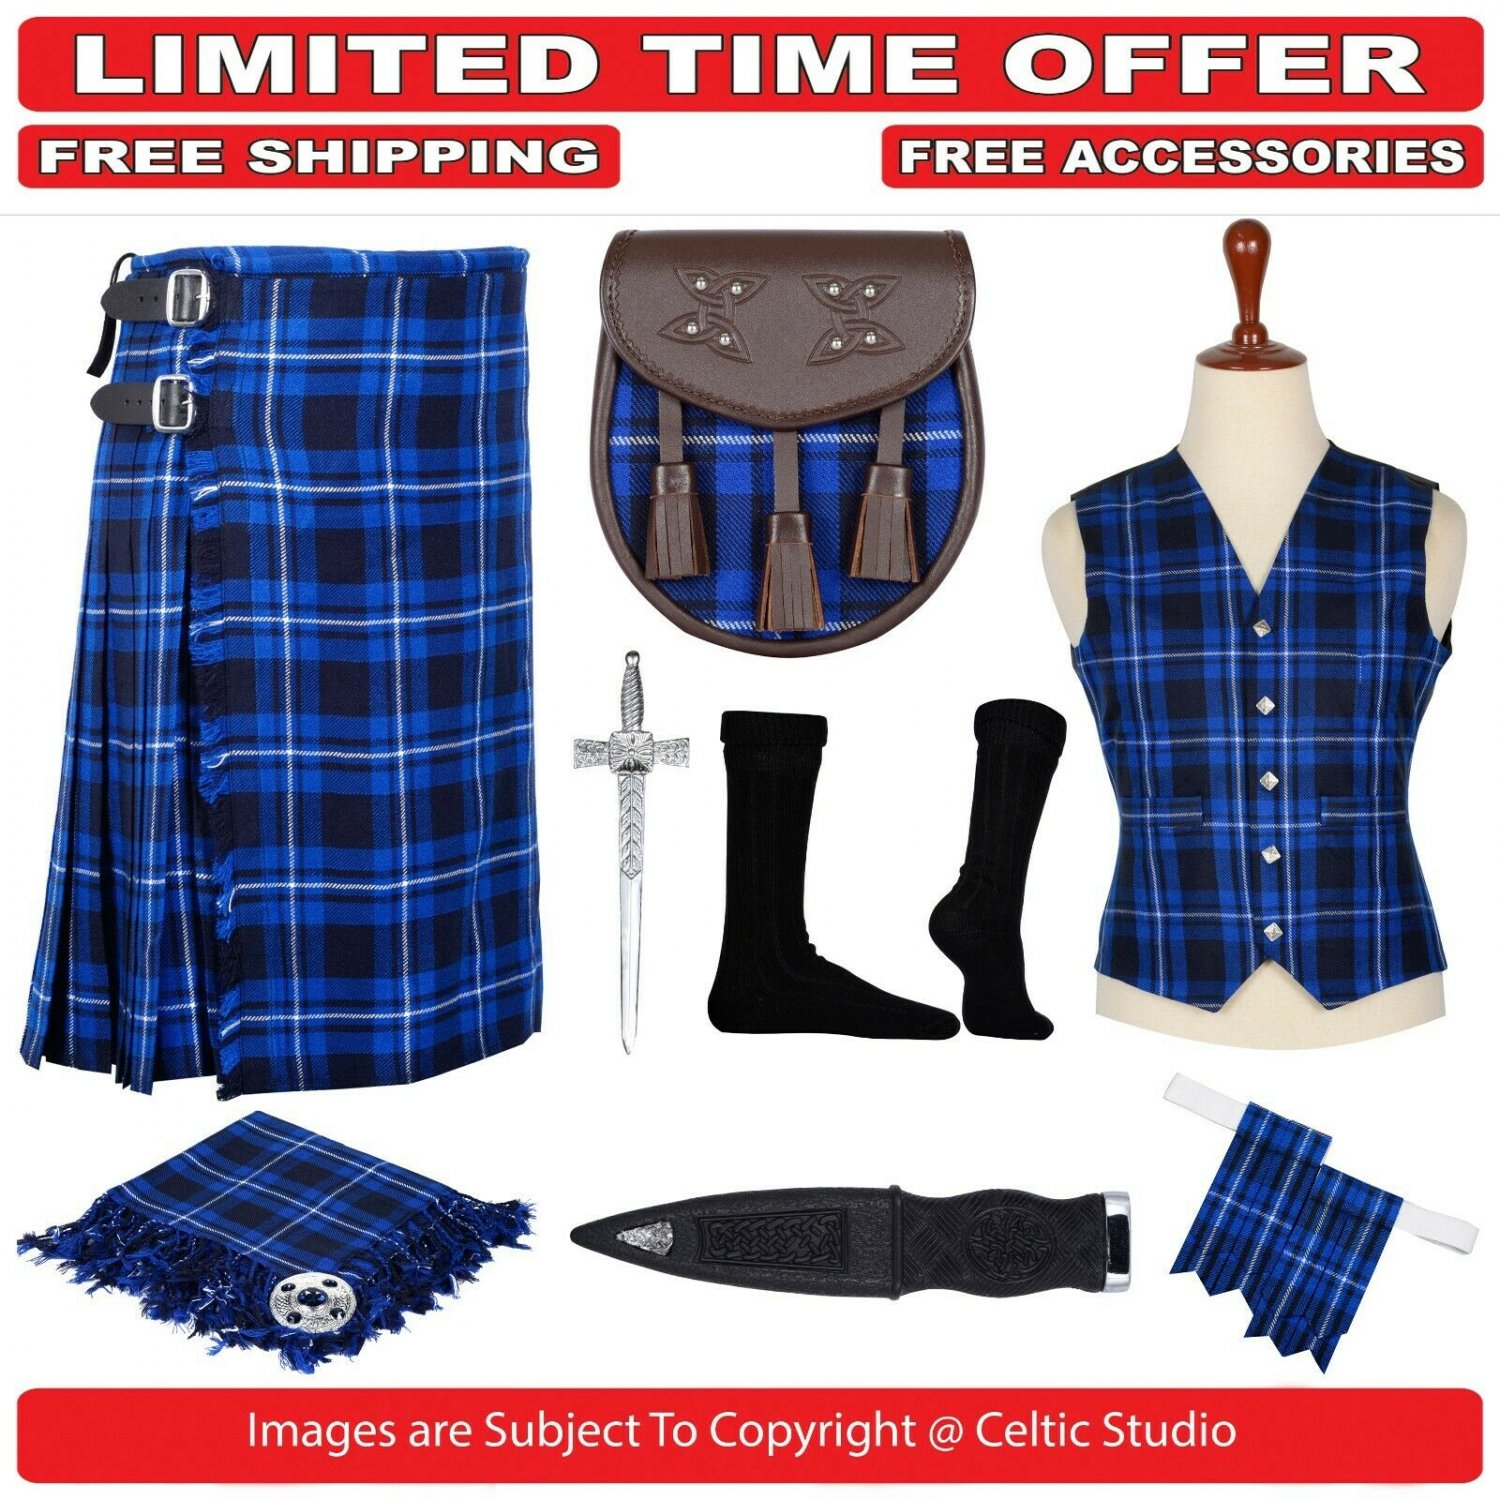 38 size Ramsey Blue Scottish Traditional Tartan Kilt With Free Shipping and 9 Accessories